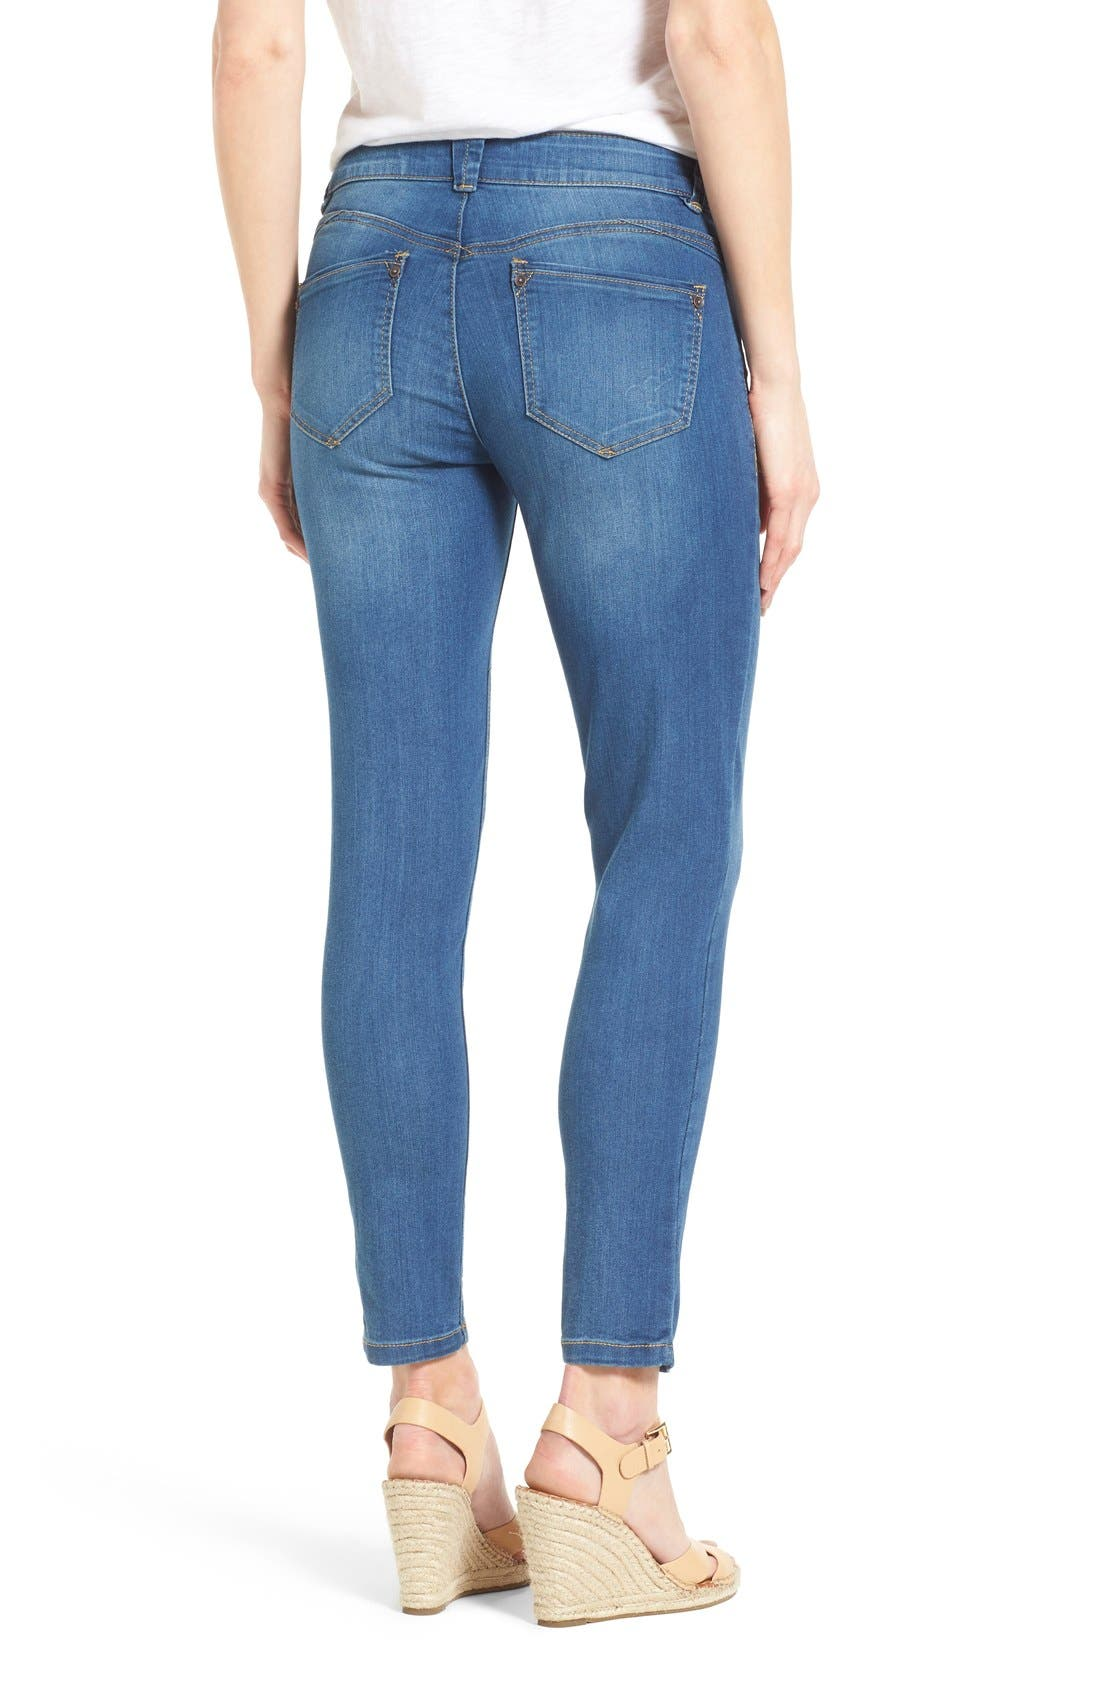 'Ab-solution' Stretch Ankle Skinny Jeans,                             Alternate thumbnail 2, color,                             Blue